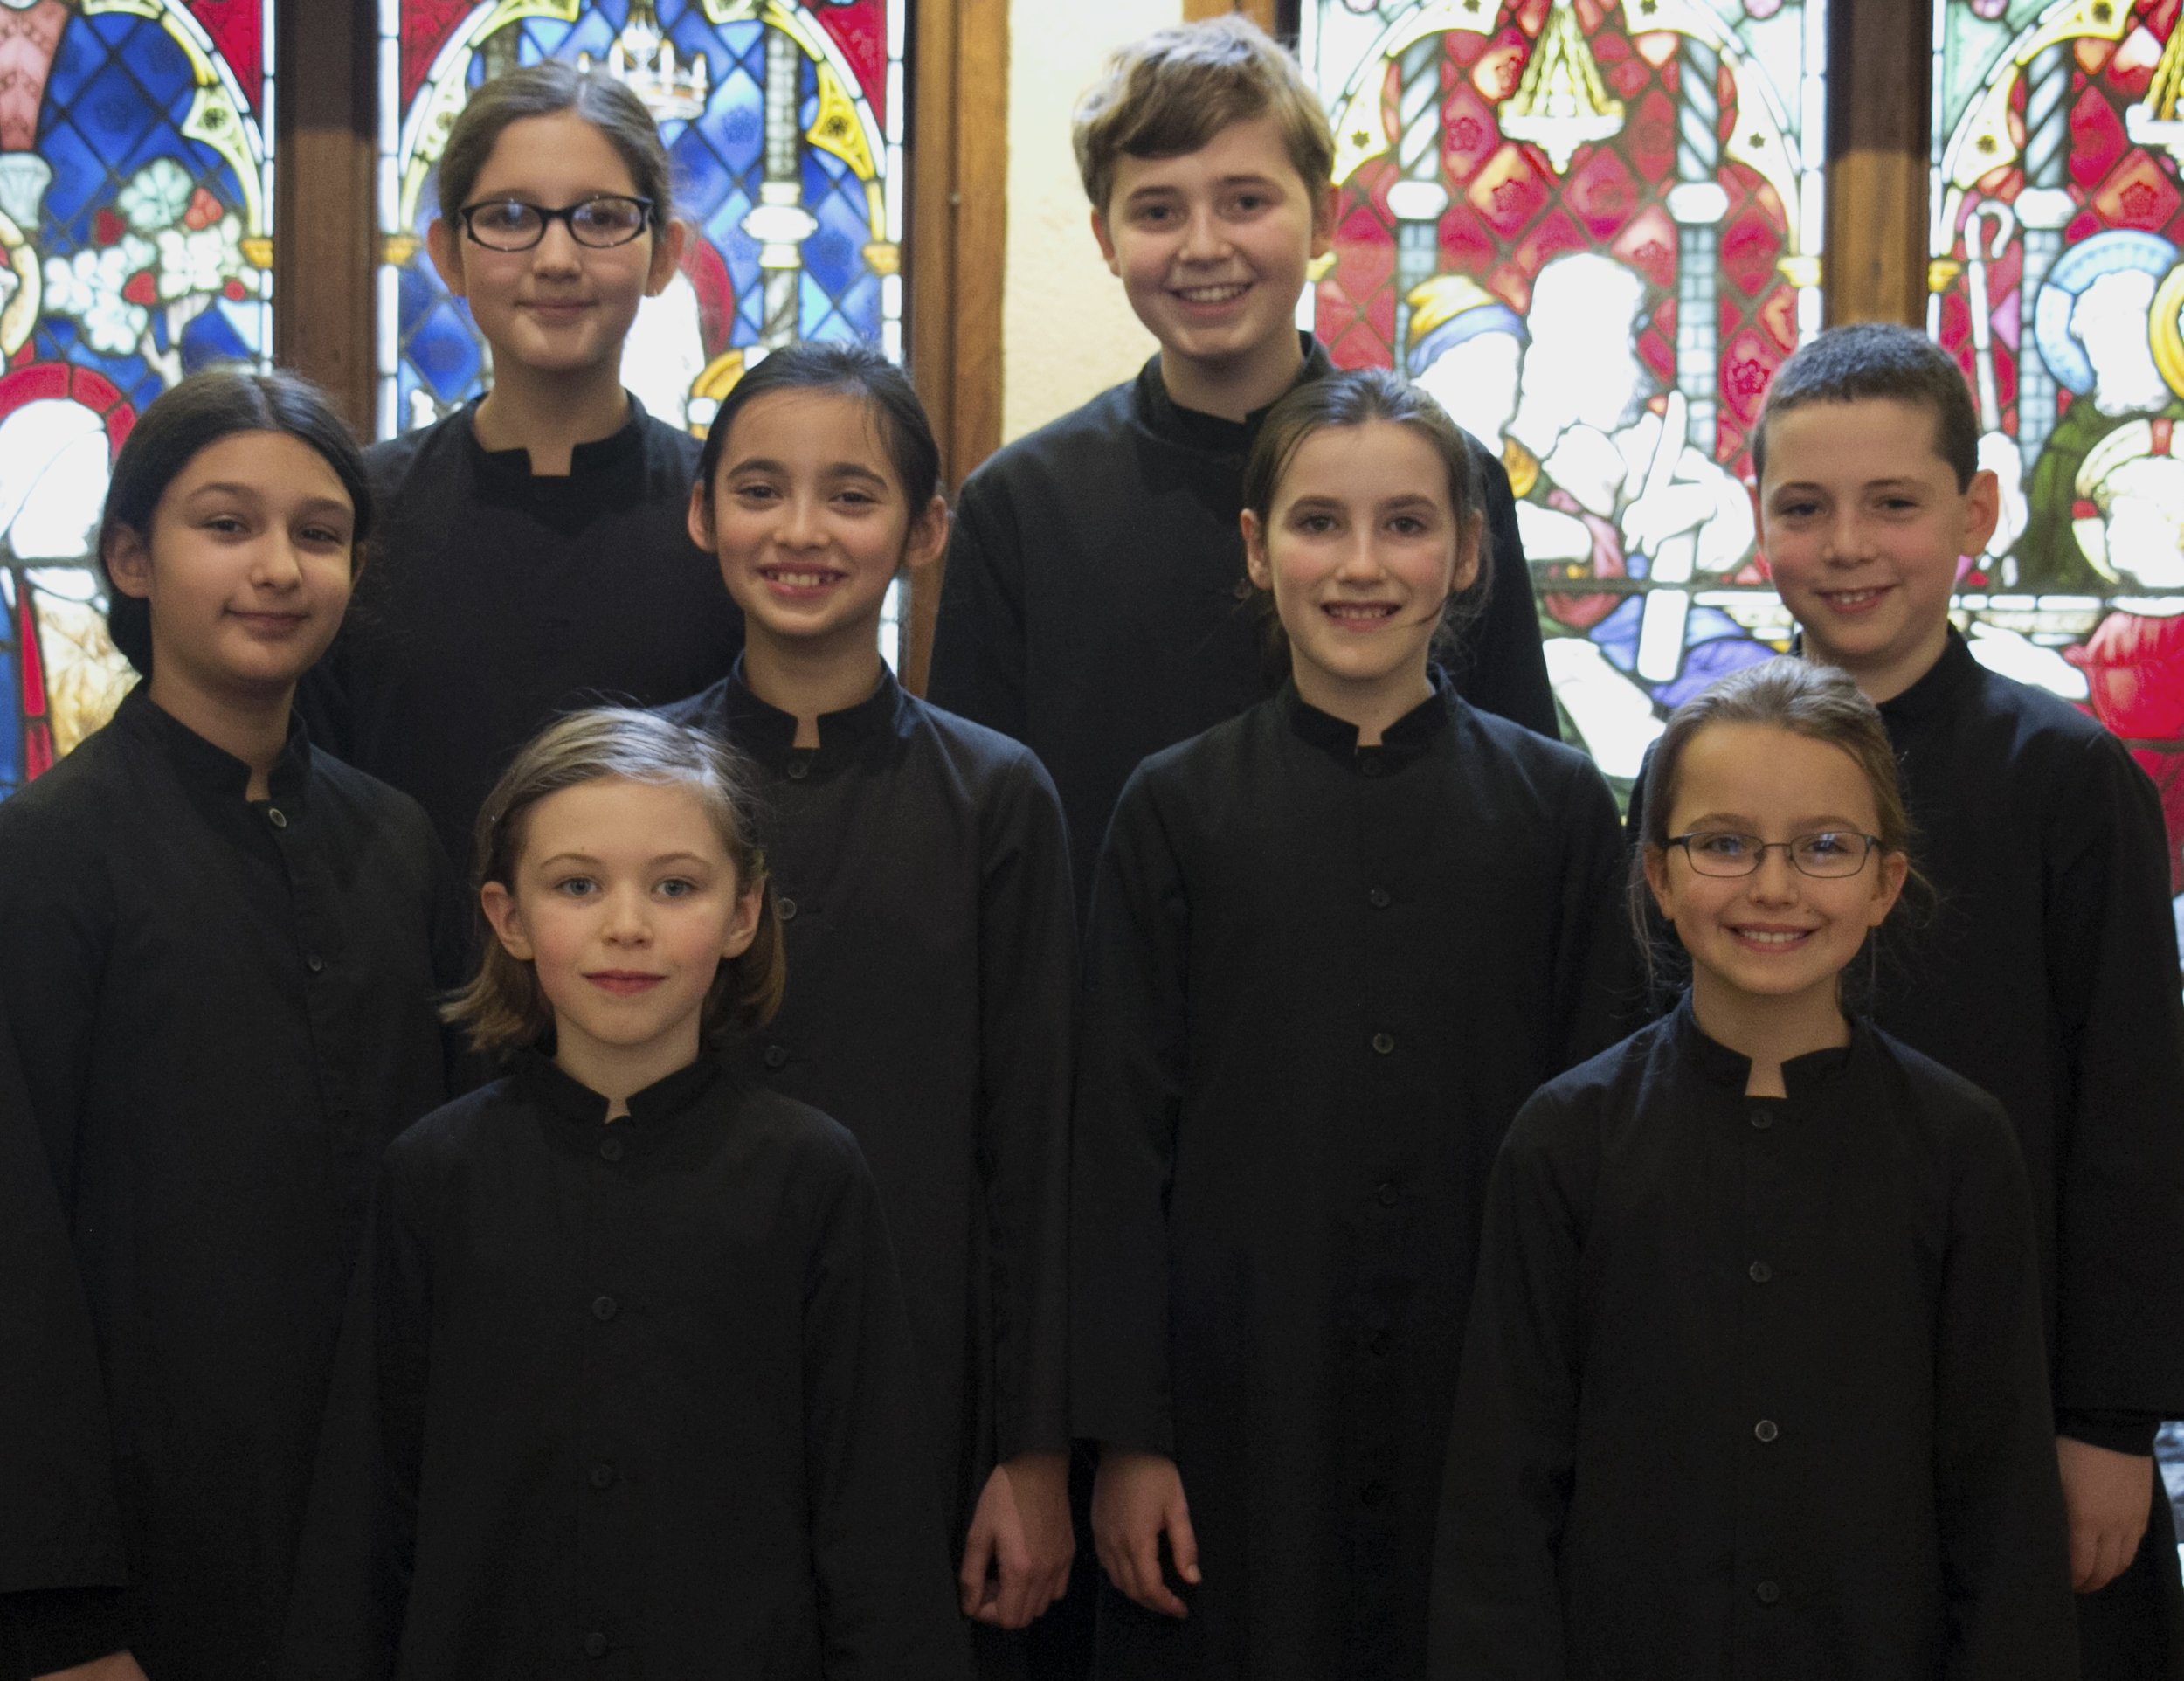 OperaKids members from Boston City Singers. Around two dozen OperaKids will come to New York to perform  Oedipus the King  with The Cecilia Chorus.